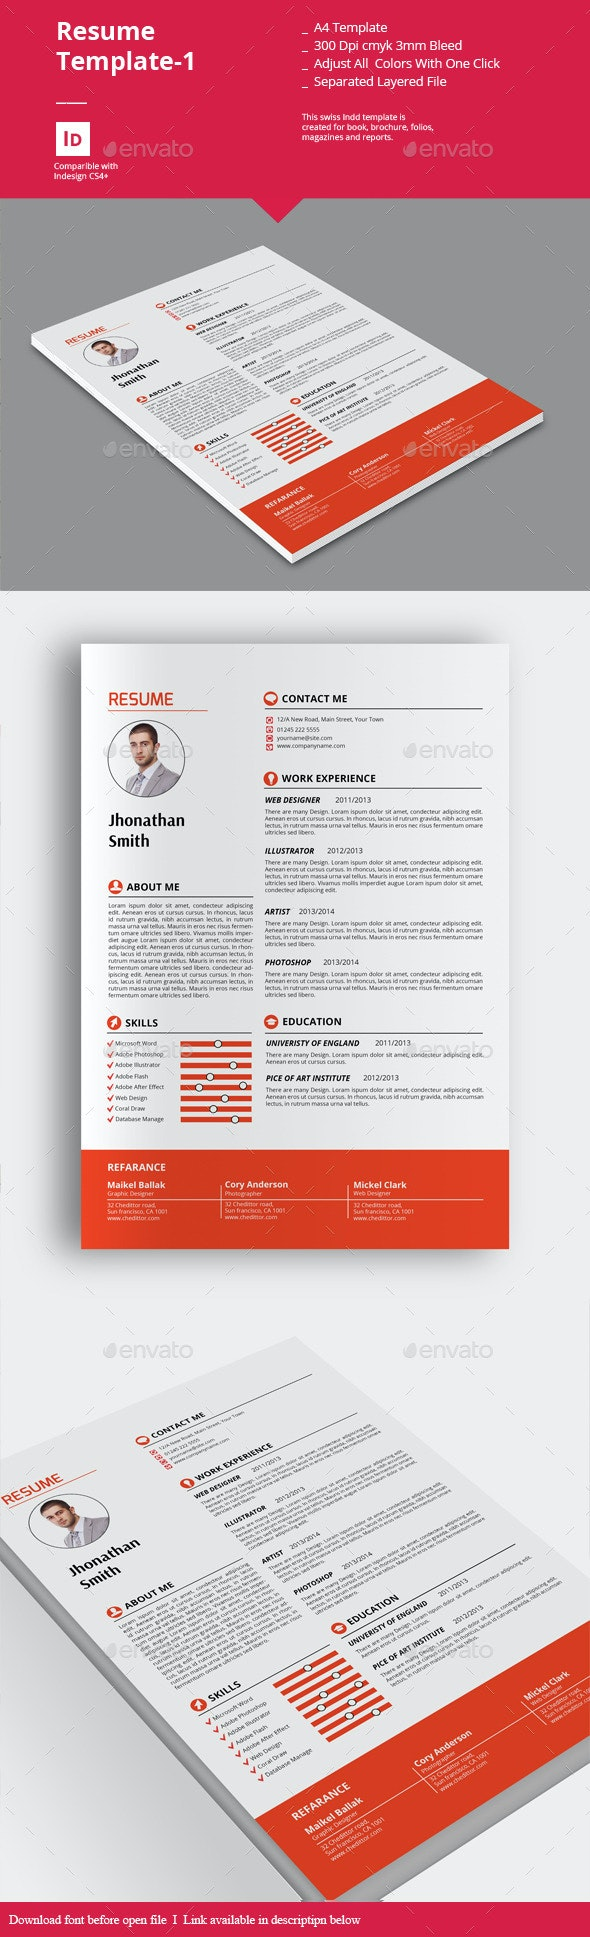 Resume Templates-1 - Resumes Stationery